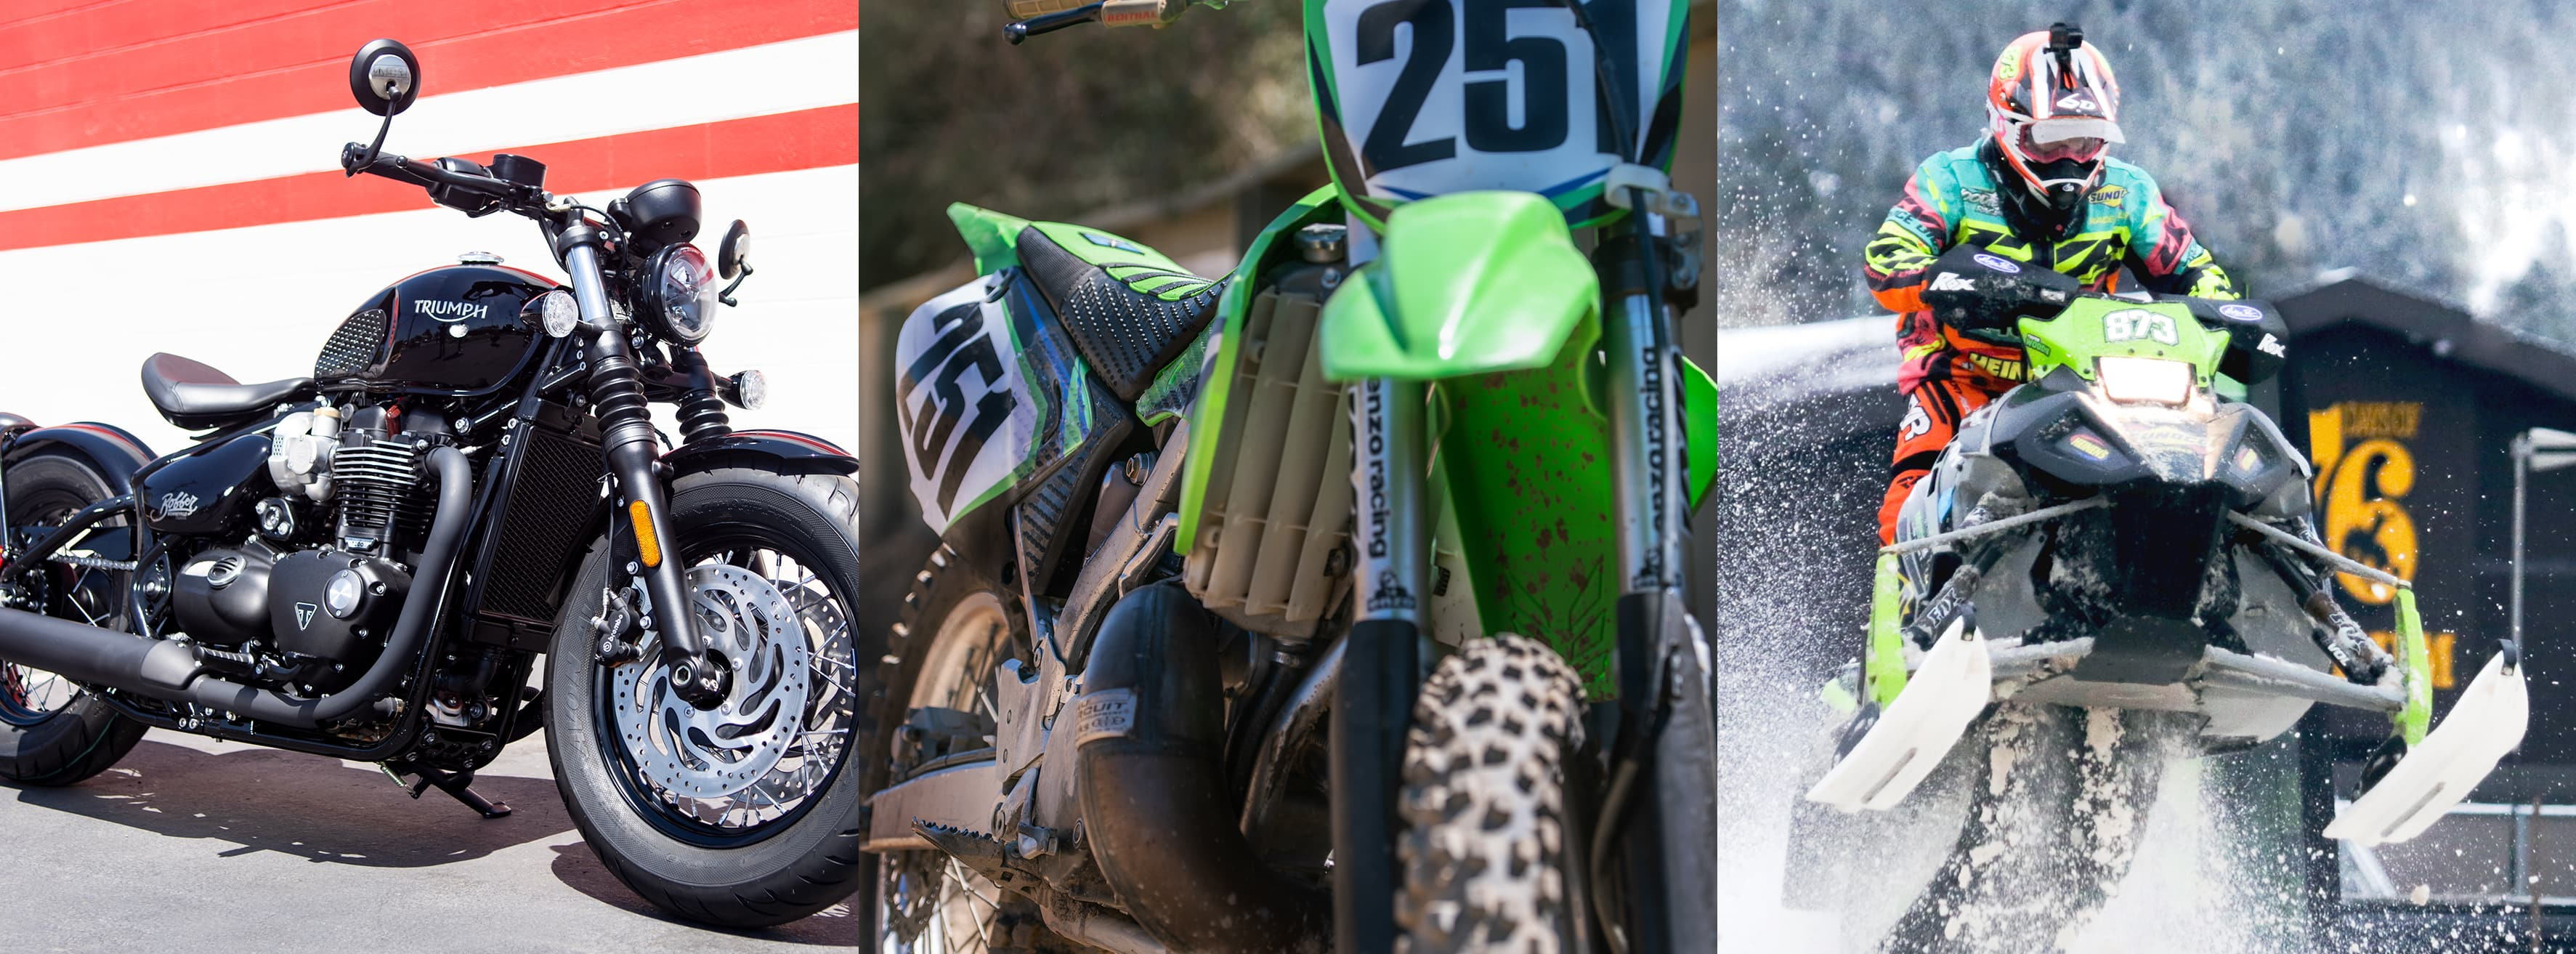 STOMPGRIP Tank Grips work for Street, Dirt, and Snow